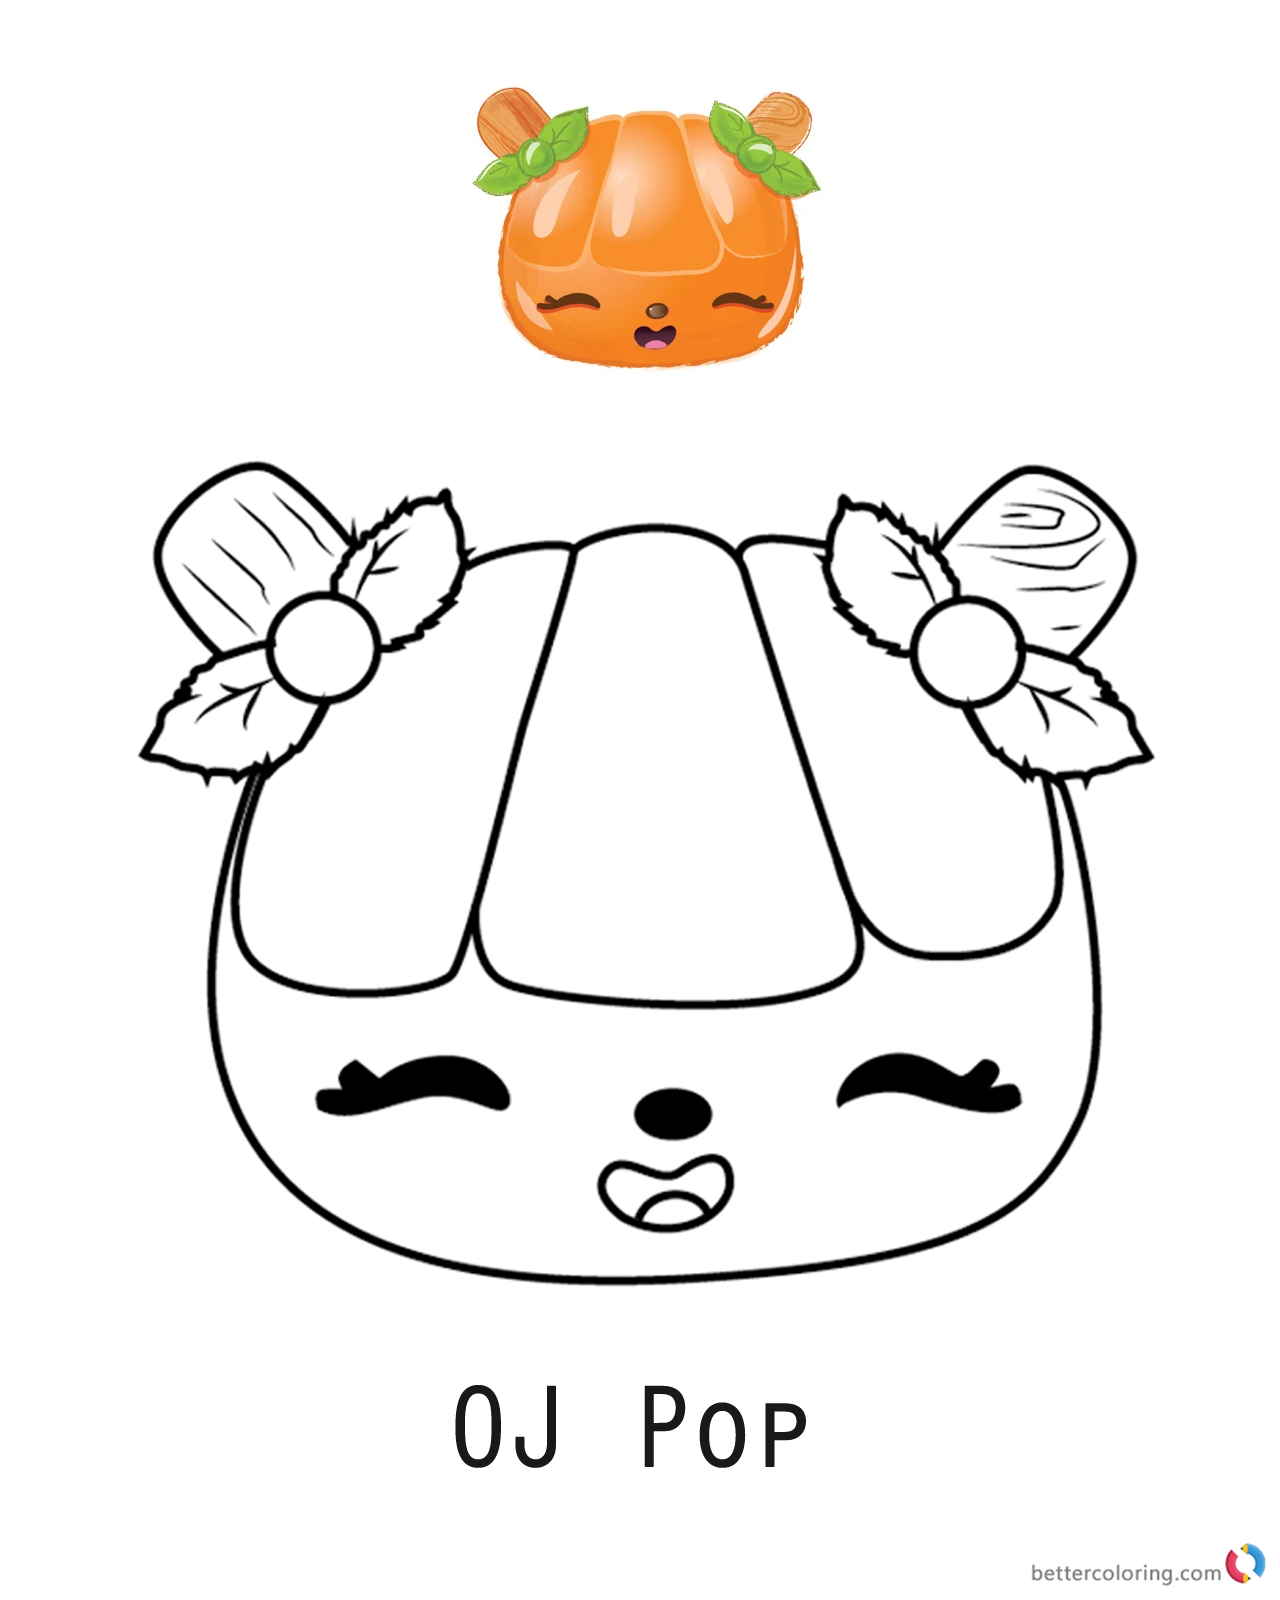 OJ Pop from Num Noms coloring pages printable